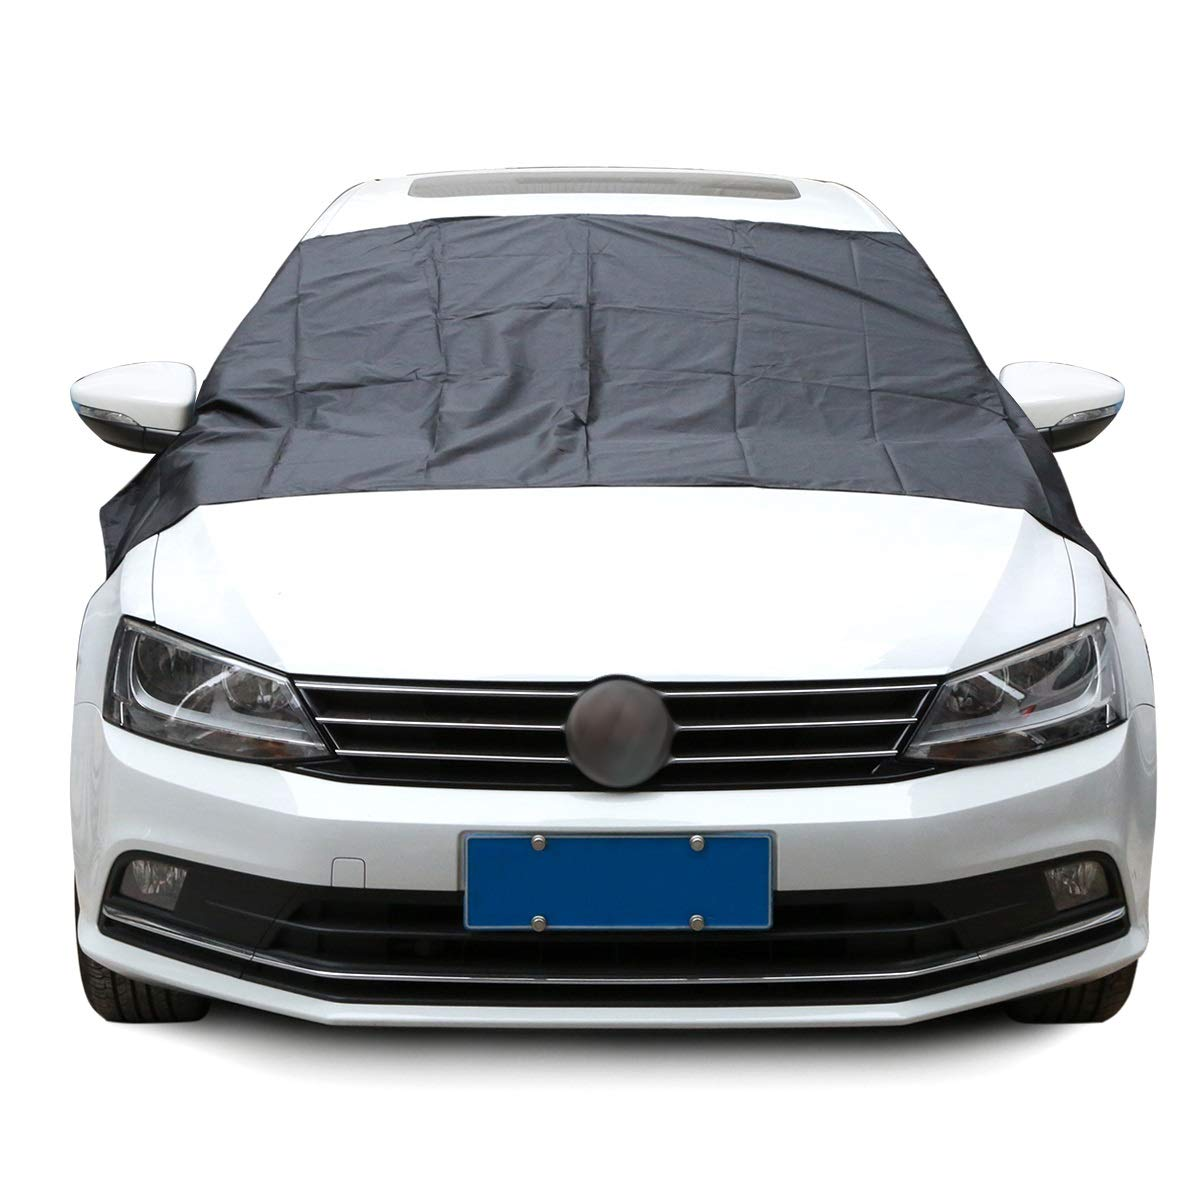 Window Cover for Car Sunshade Snow Covers with Magnet stciker Reflective Foil Suitable for All Car Windshield Prevent Frost/Mist Anti-UV (Color : Black)